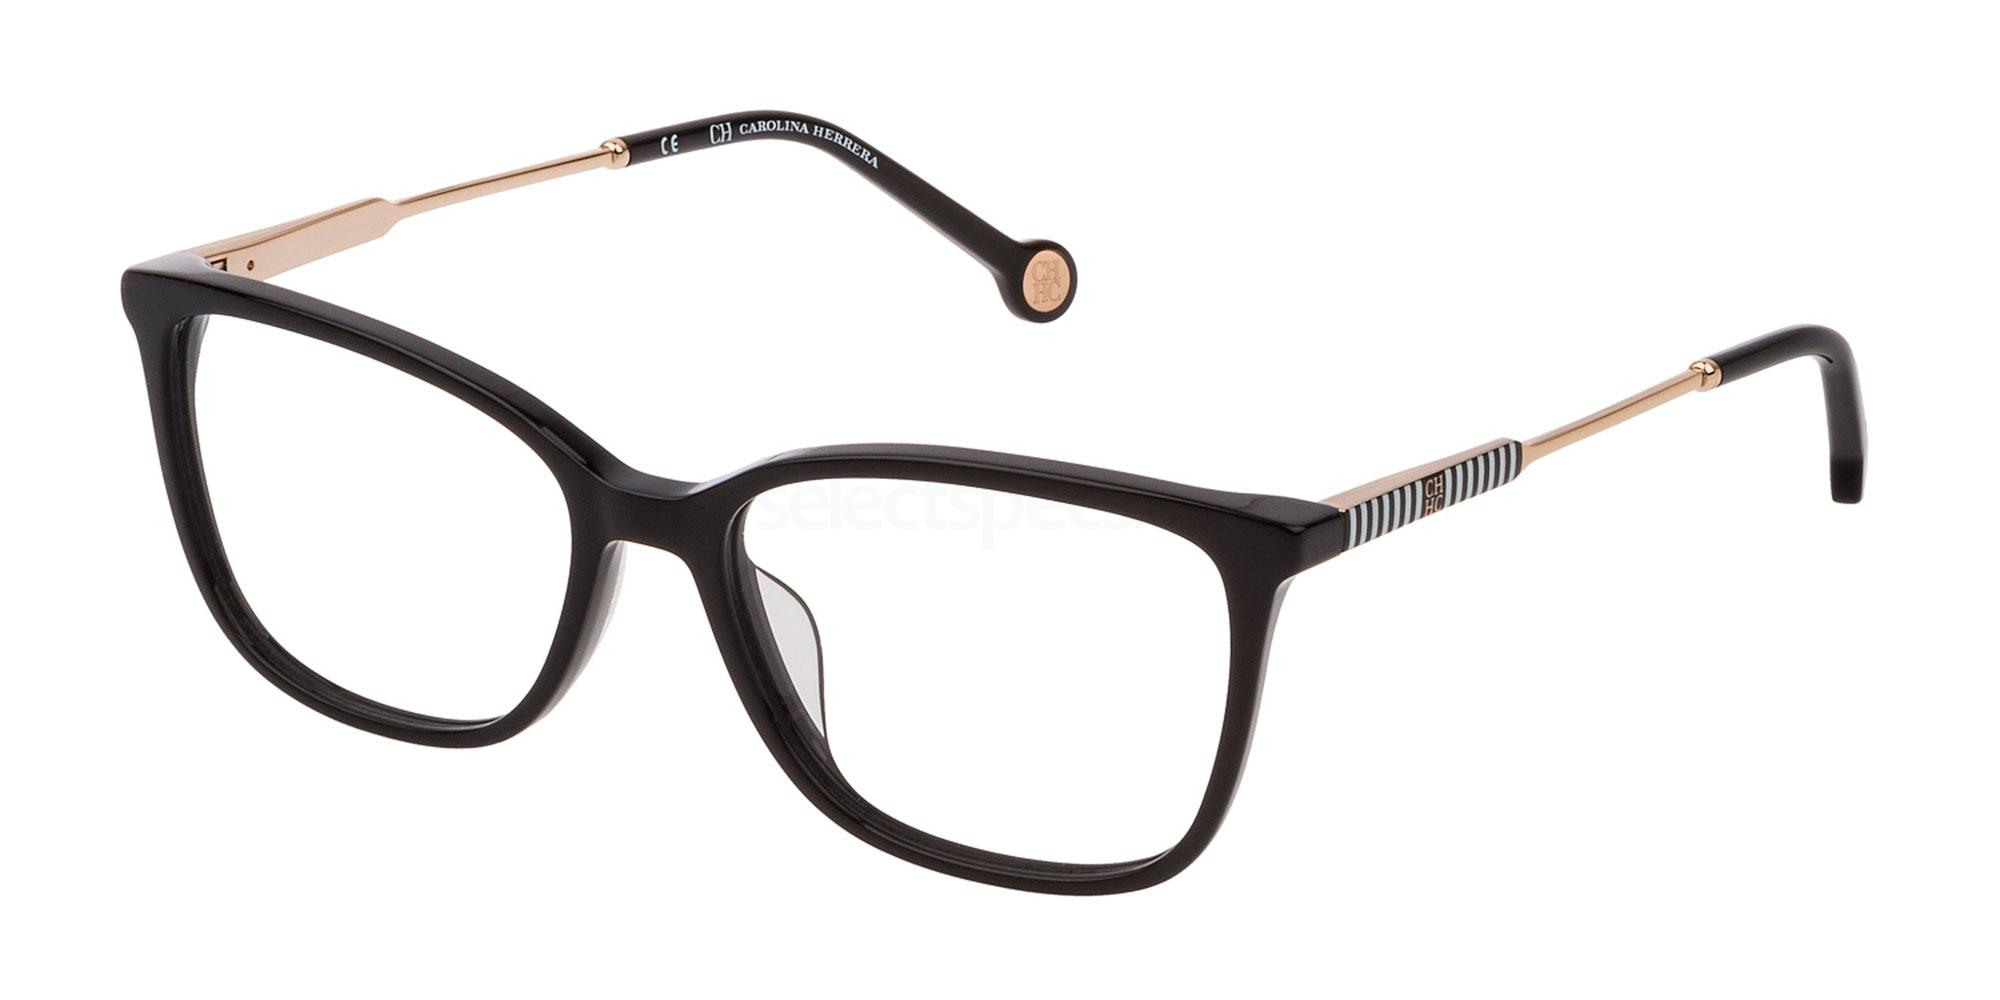 0700 VHE816 Glasses, CH Carolina Herrera